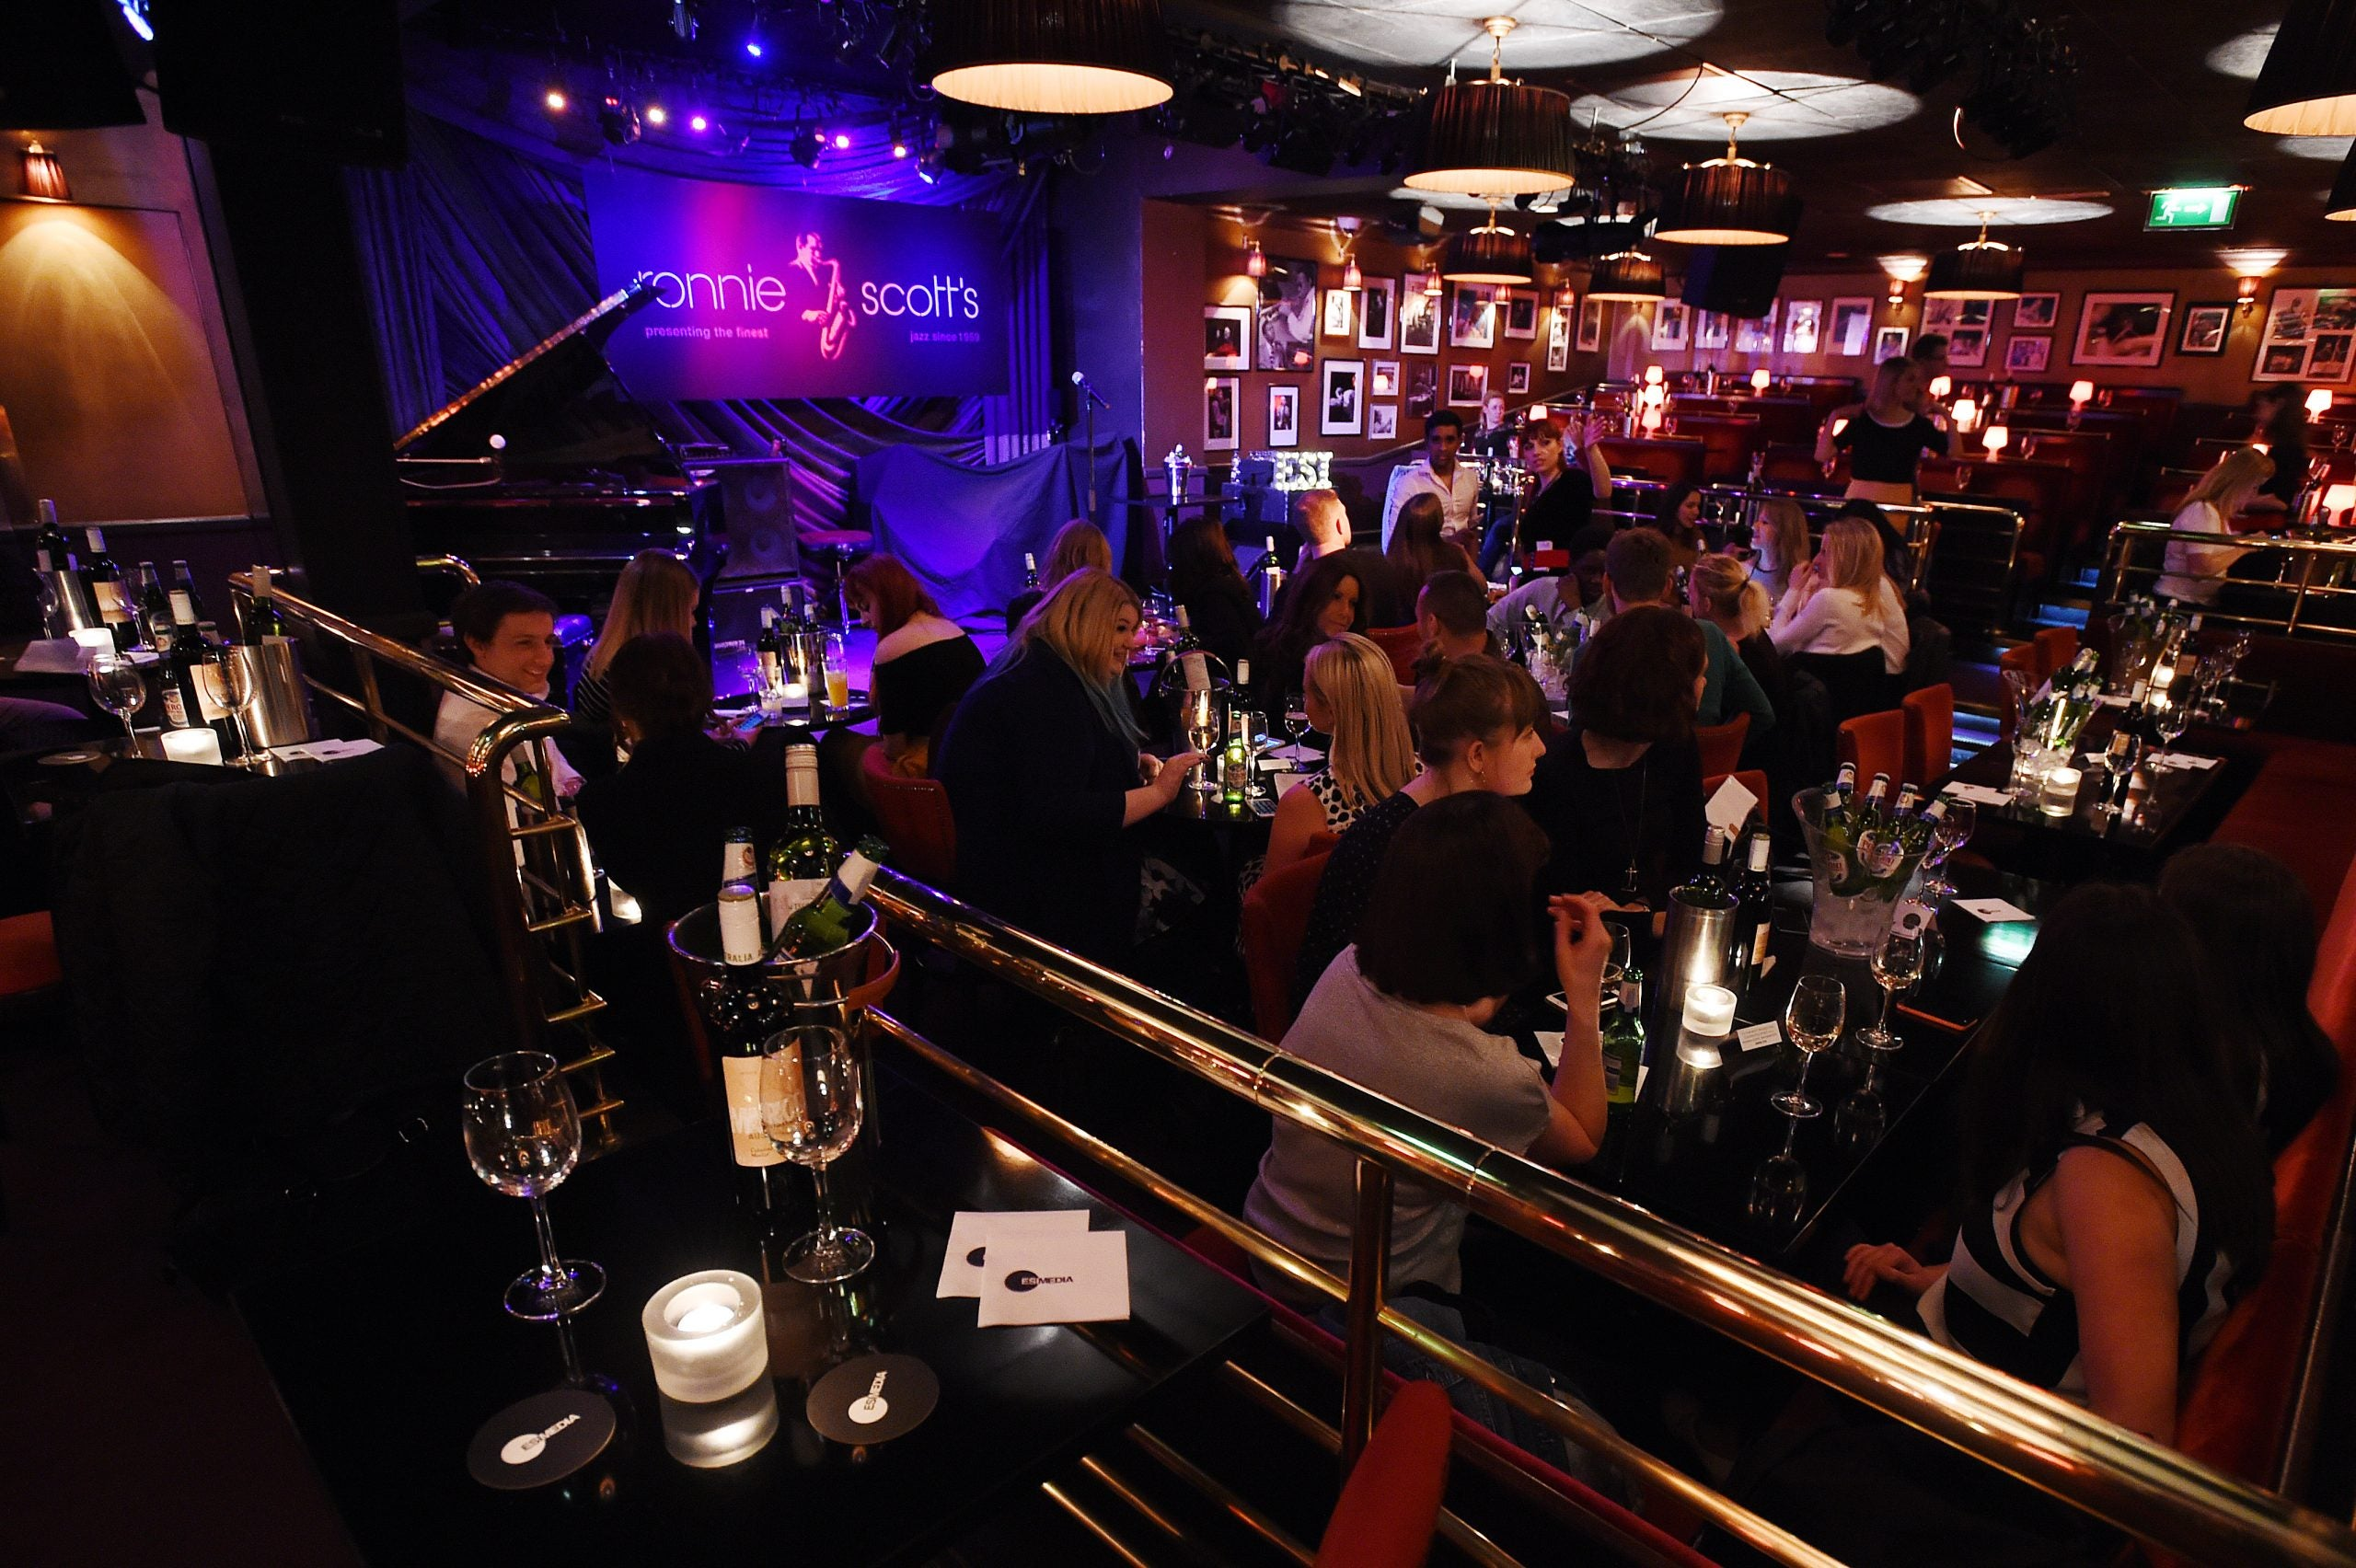 Ronnie Scott understood that for some people music is the only outlet – so he opened a club